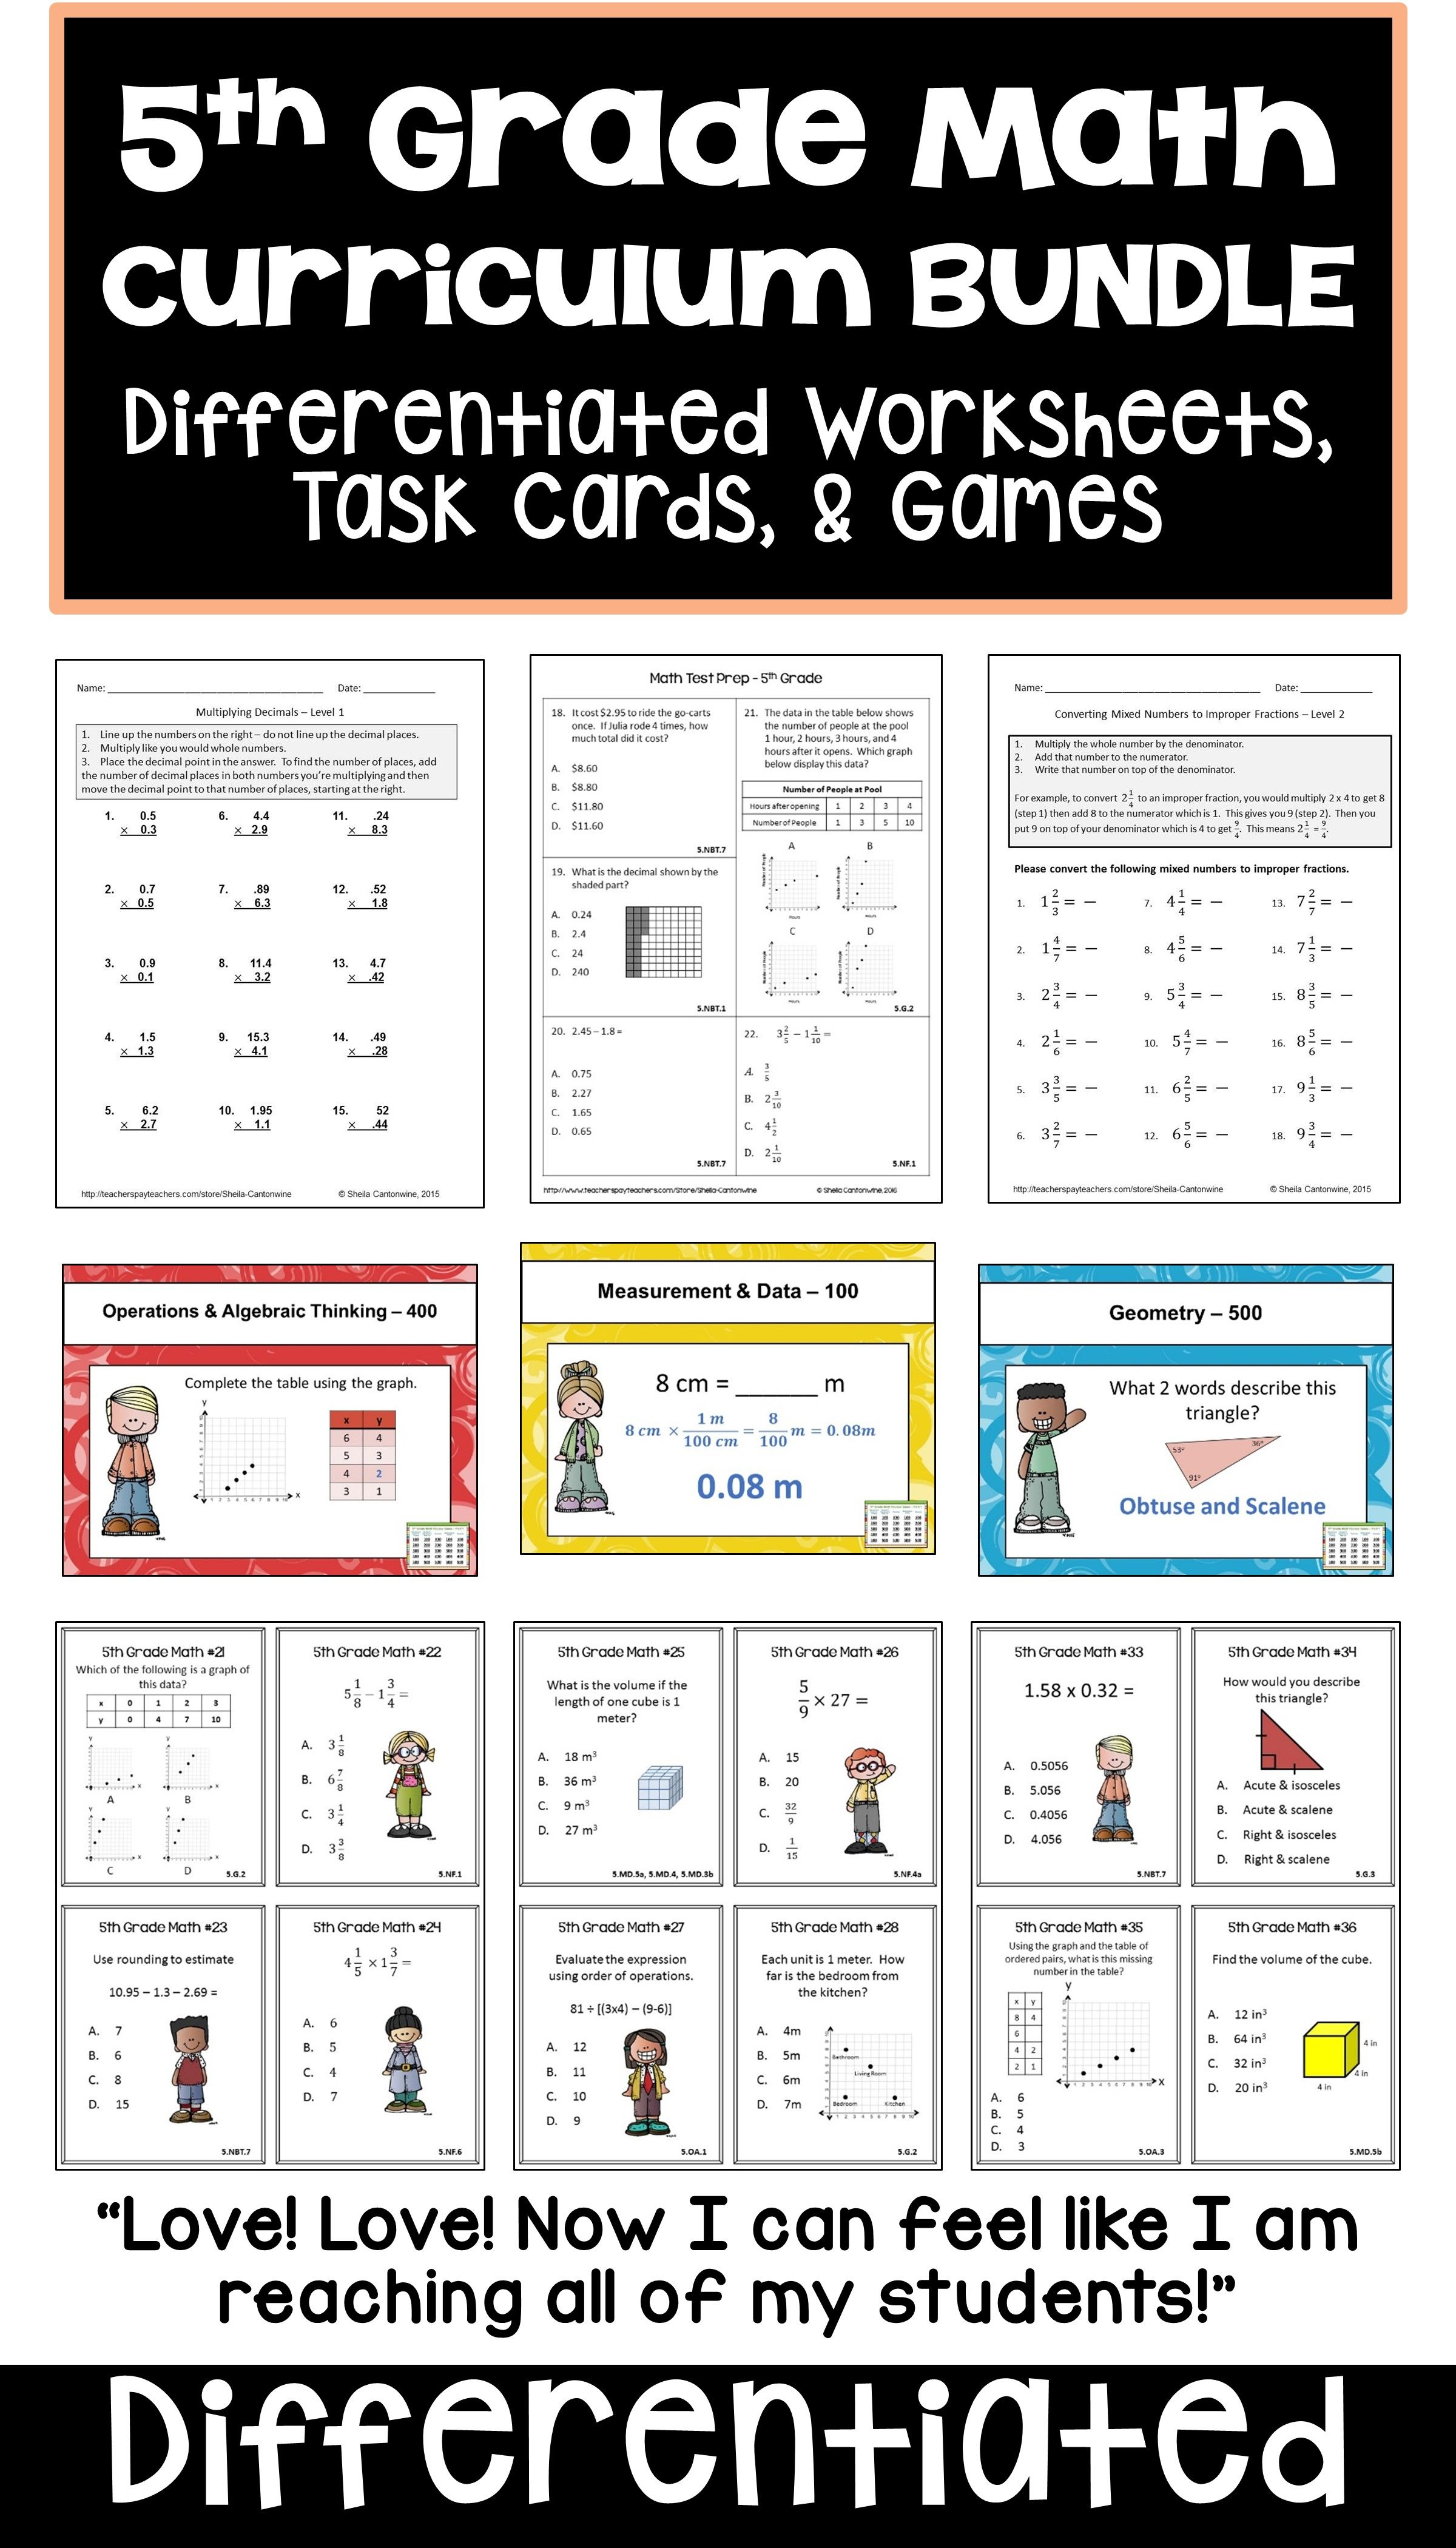 5th Grade Math Curriculum Bundle With Worksheets Task